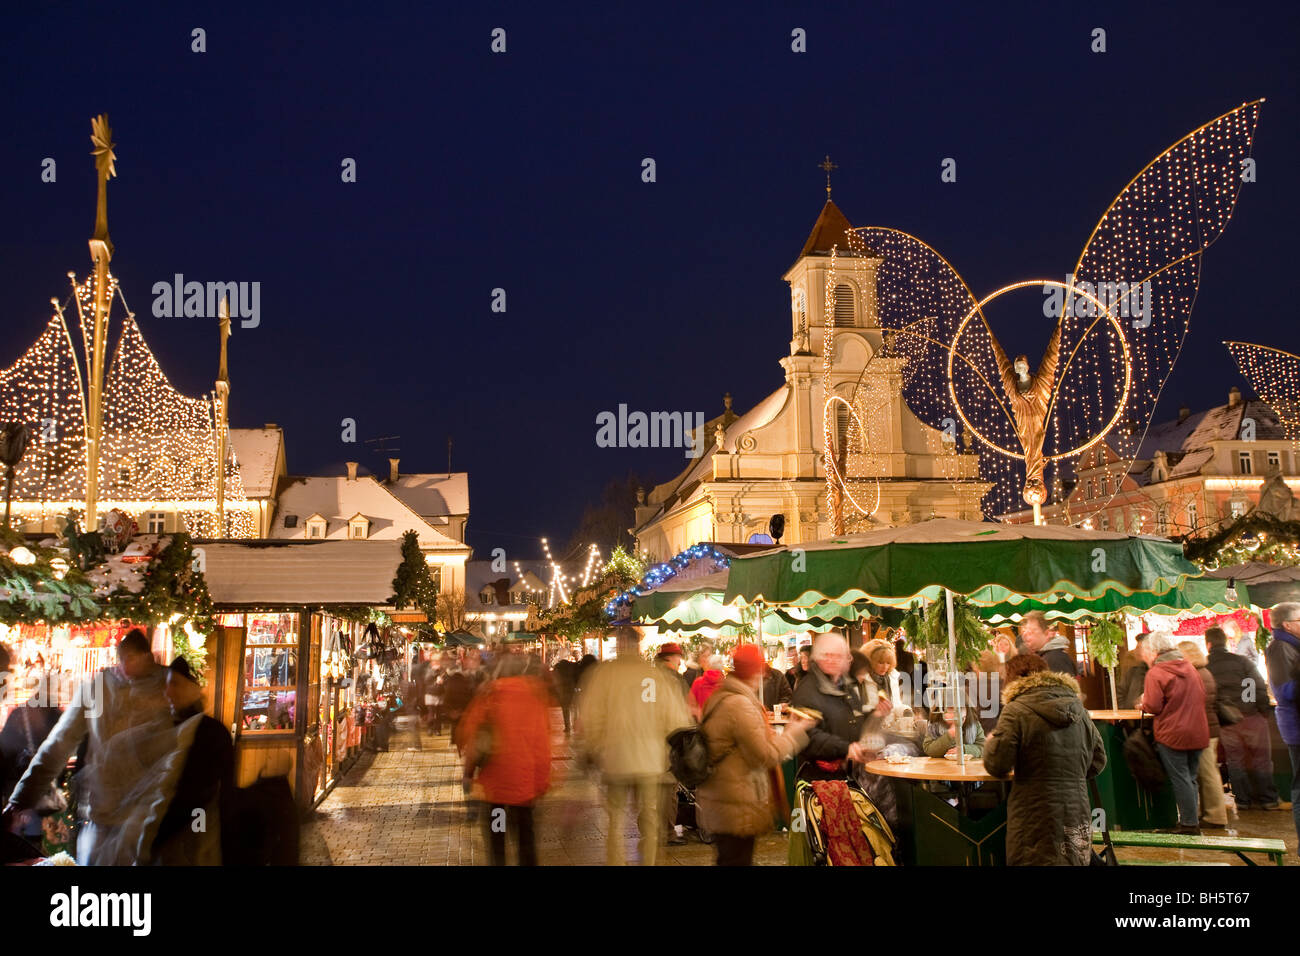 BAROQUE CHRISTMAS MARKET, EVANGELISCHE PFARRKIRCHE CHURCH Stock ...